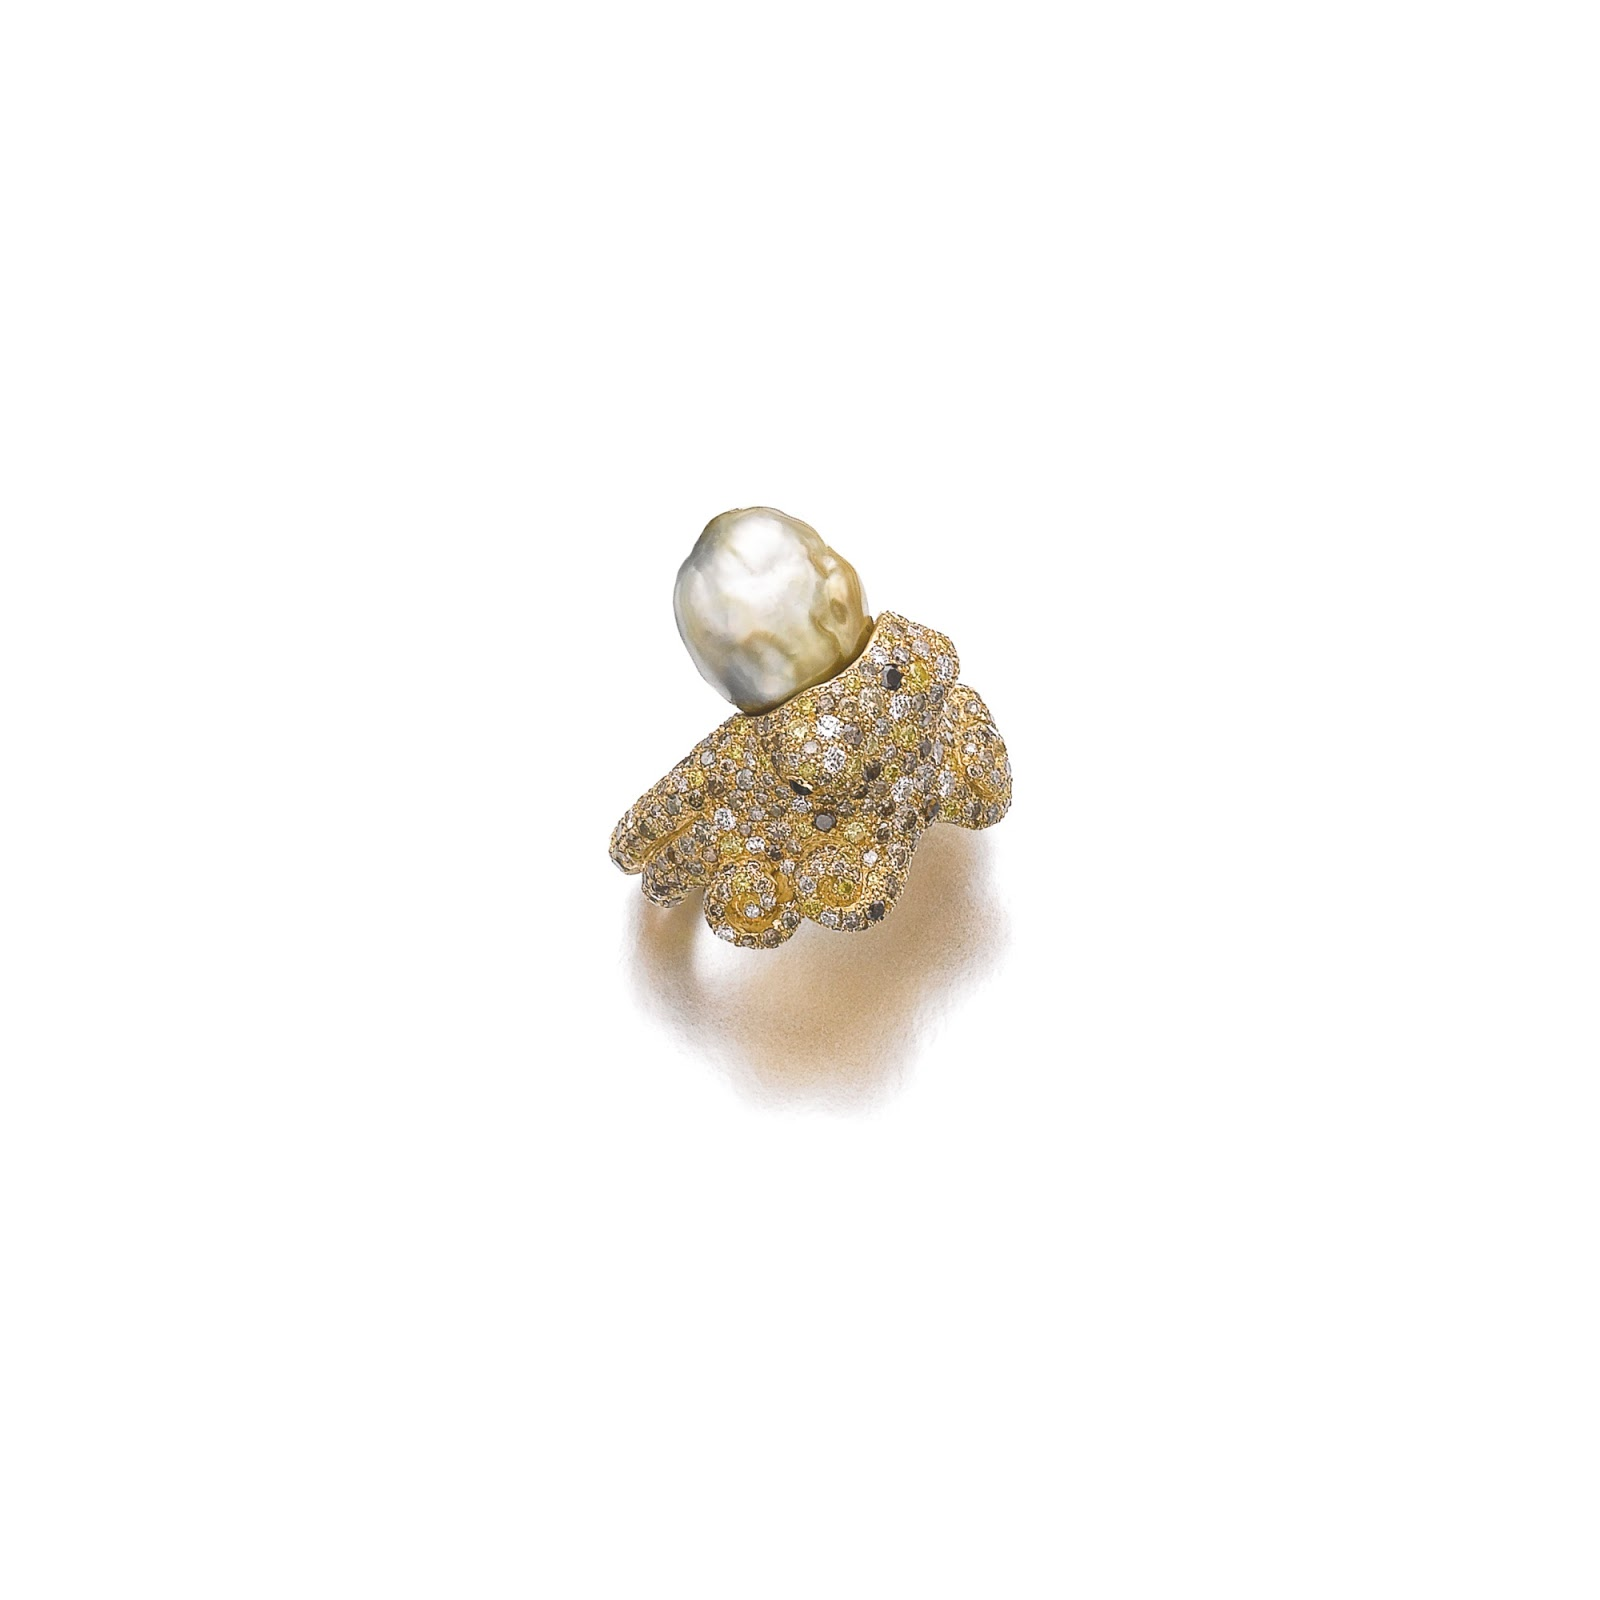 A Cultured Pearl, Onyx And Diamond Ring By Luciano Marotta Gigli